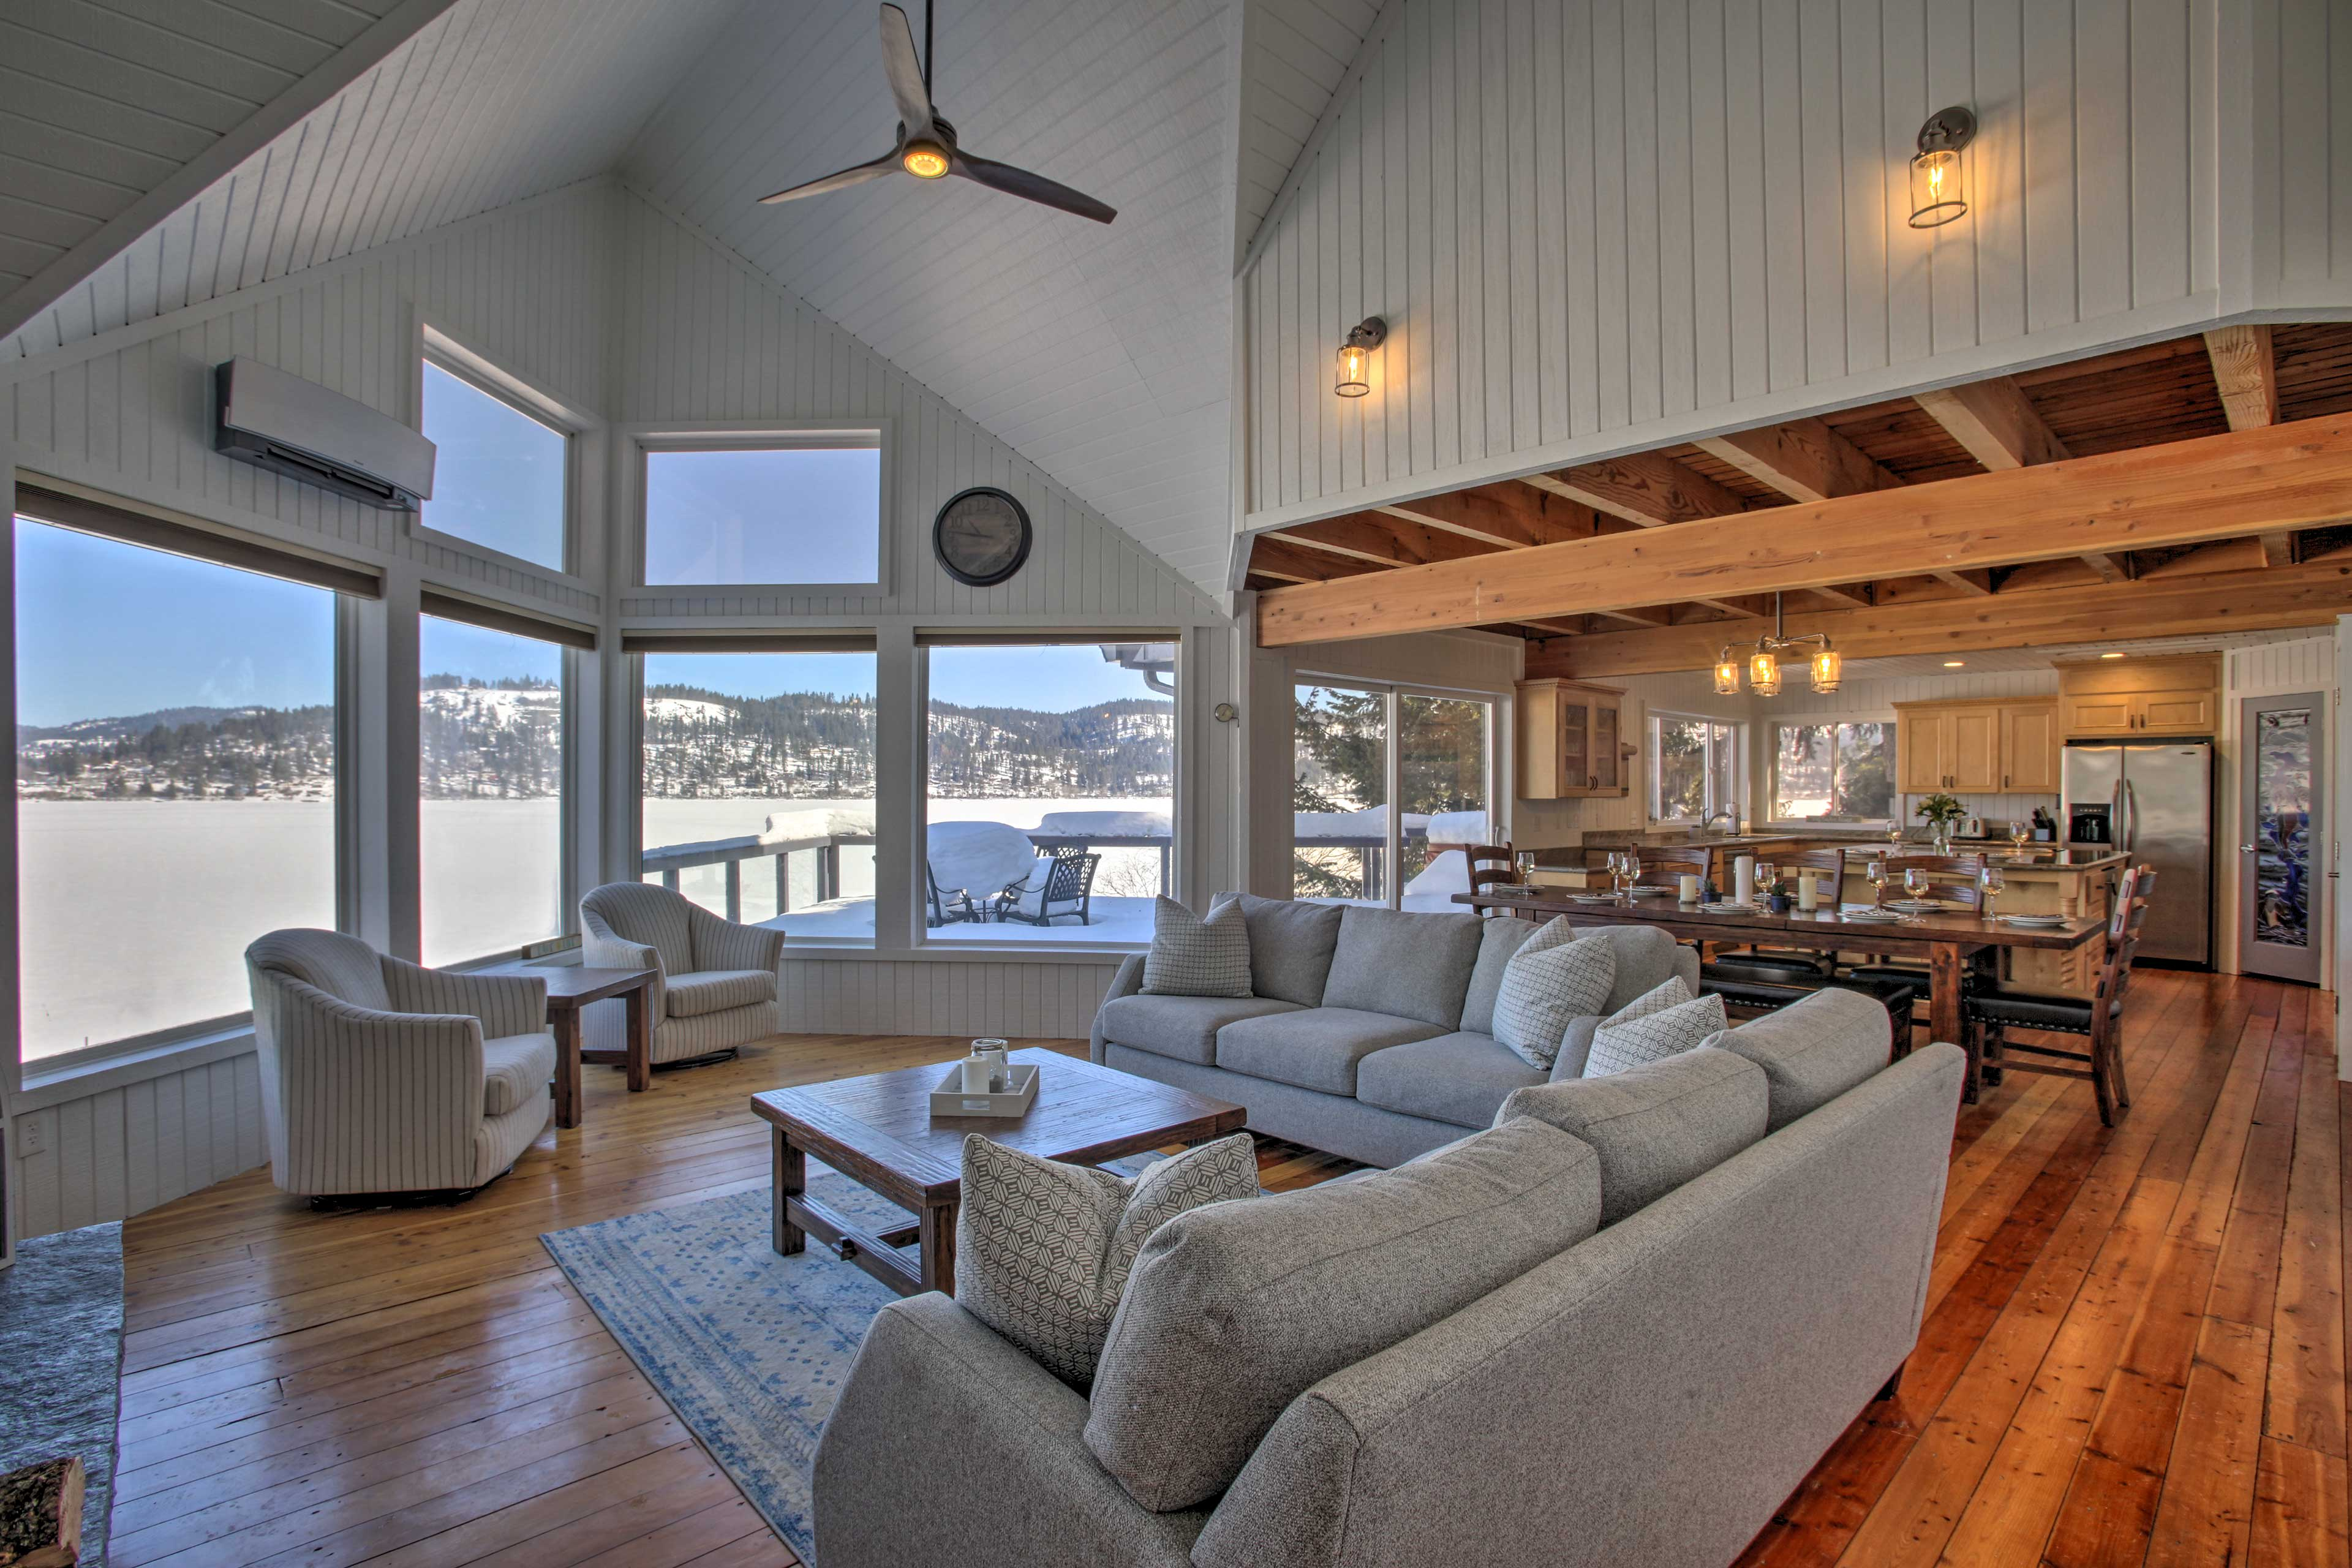 Recently remodeled, this 3,000-square-foot property is sure to impress.